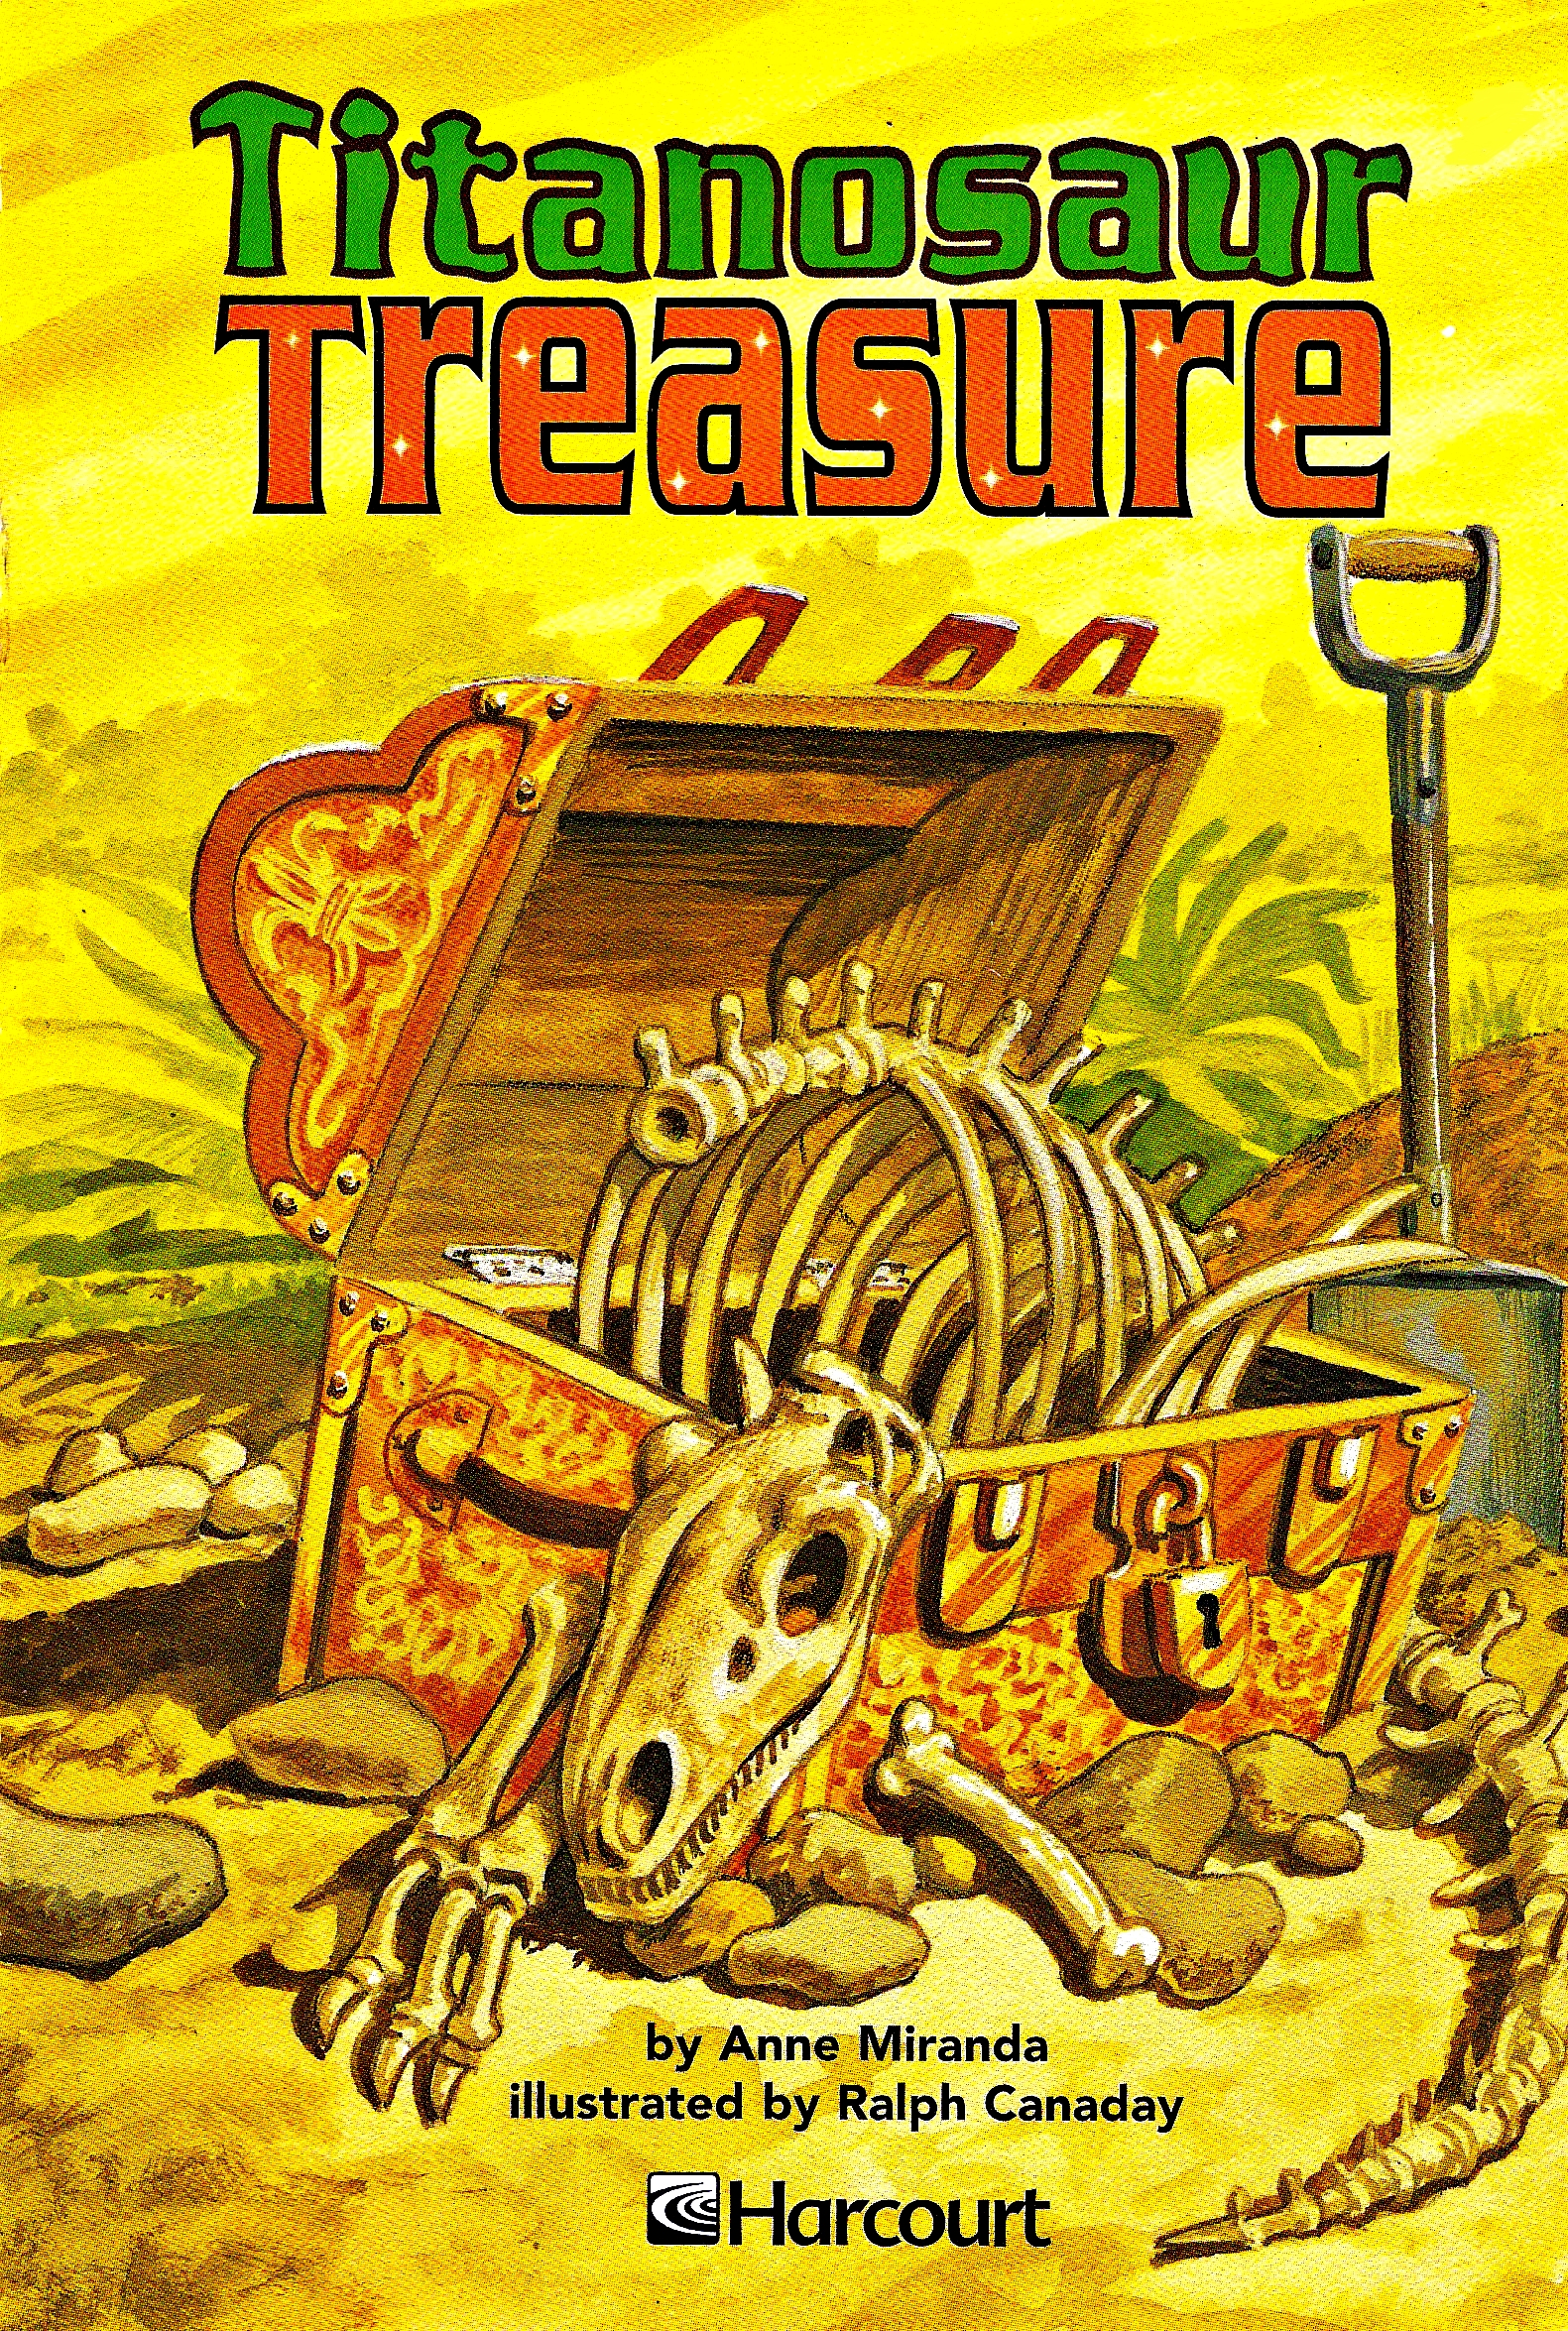 Titantosaur Treasure.jpg